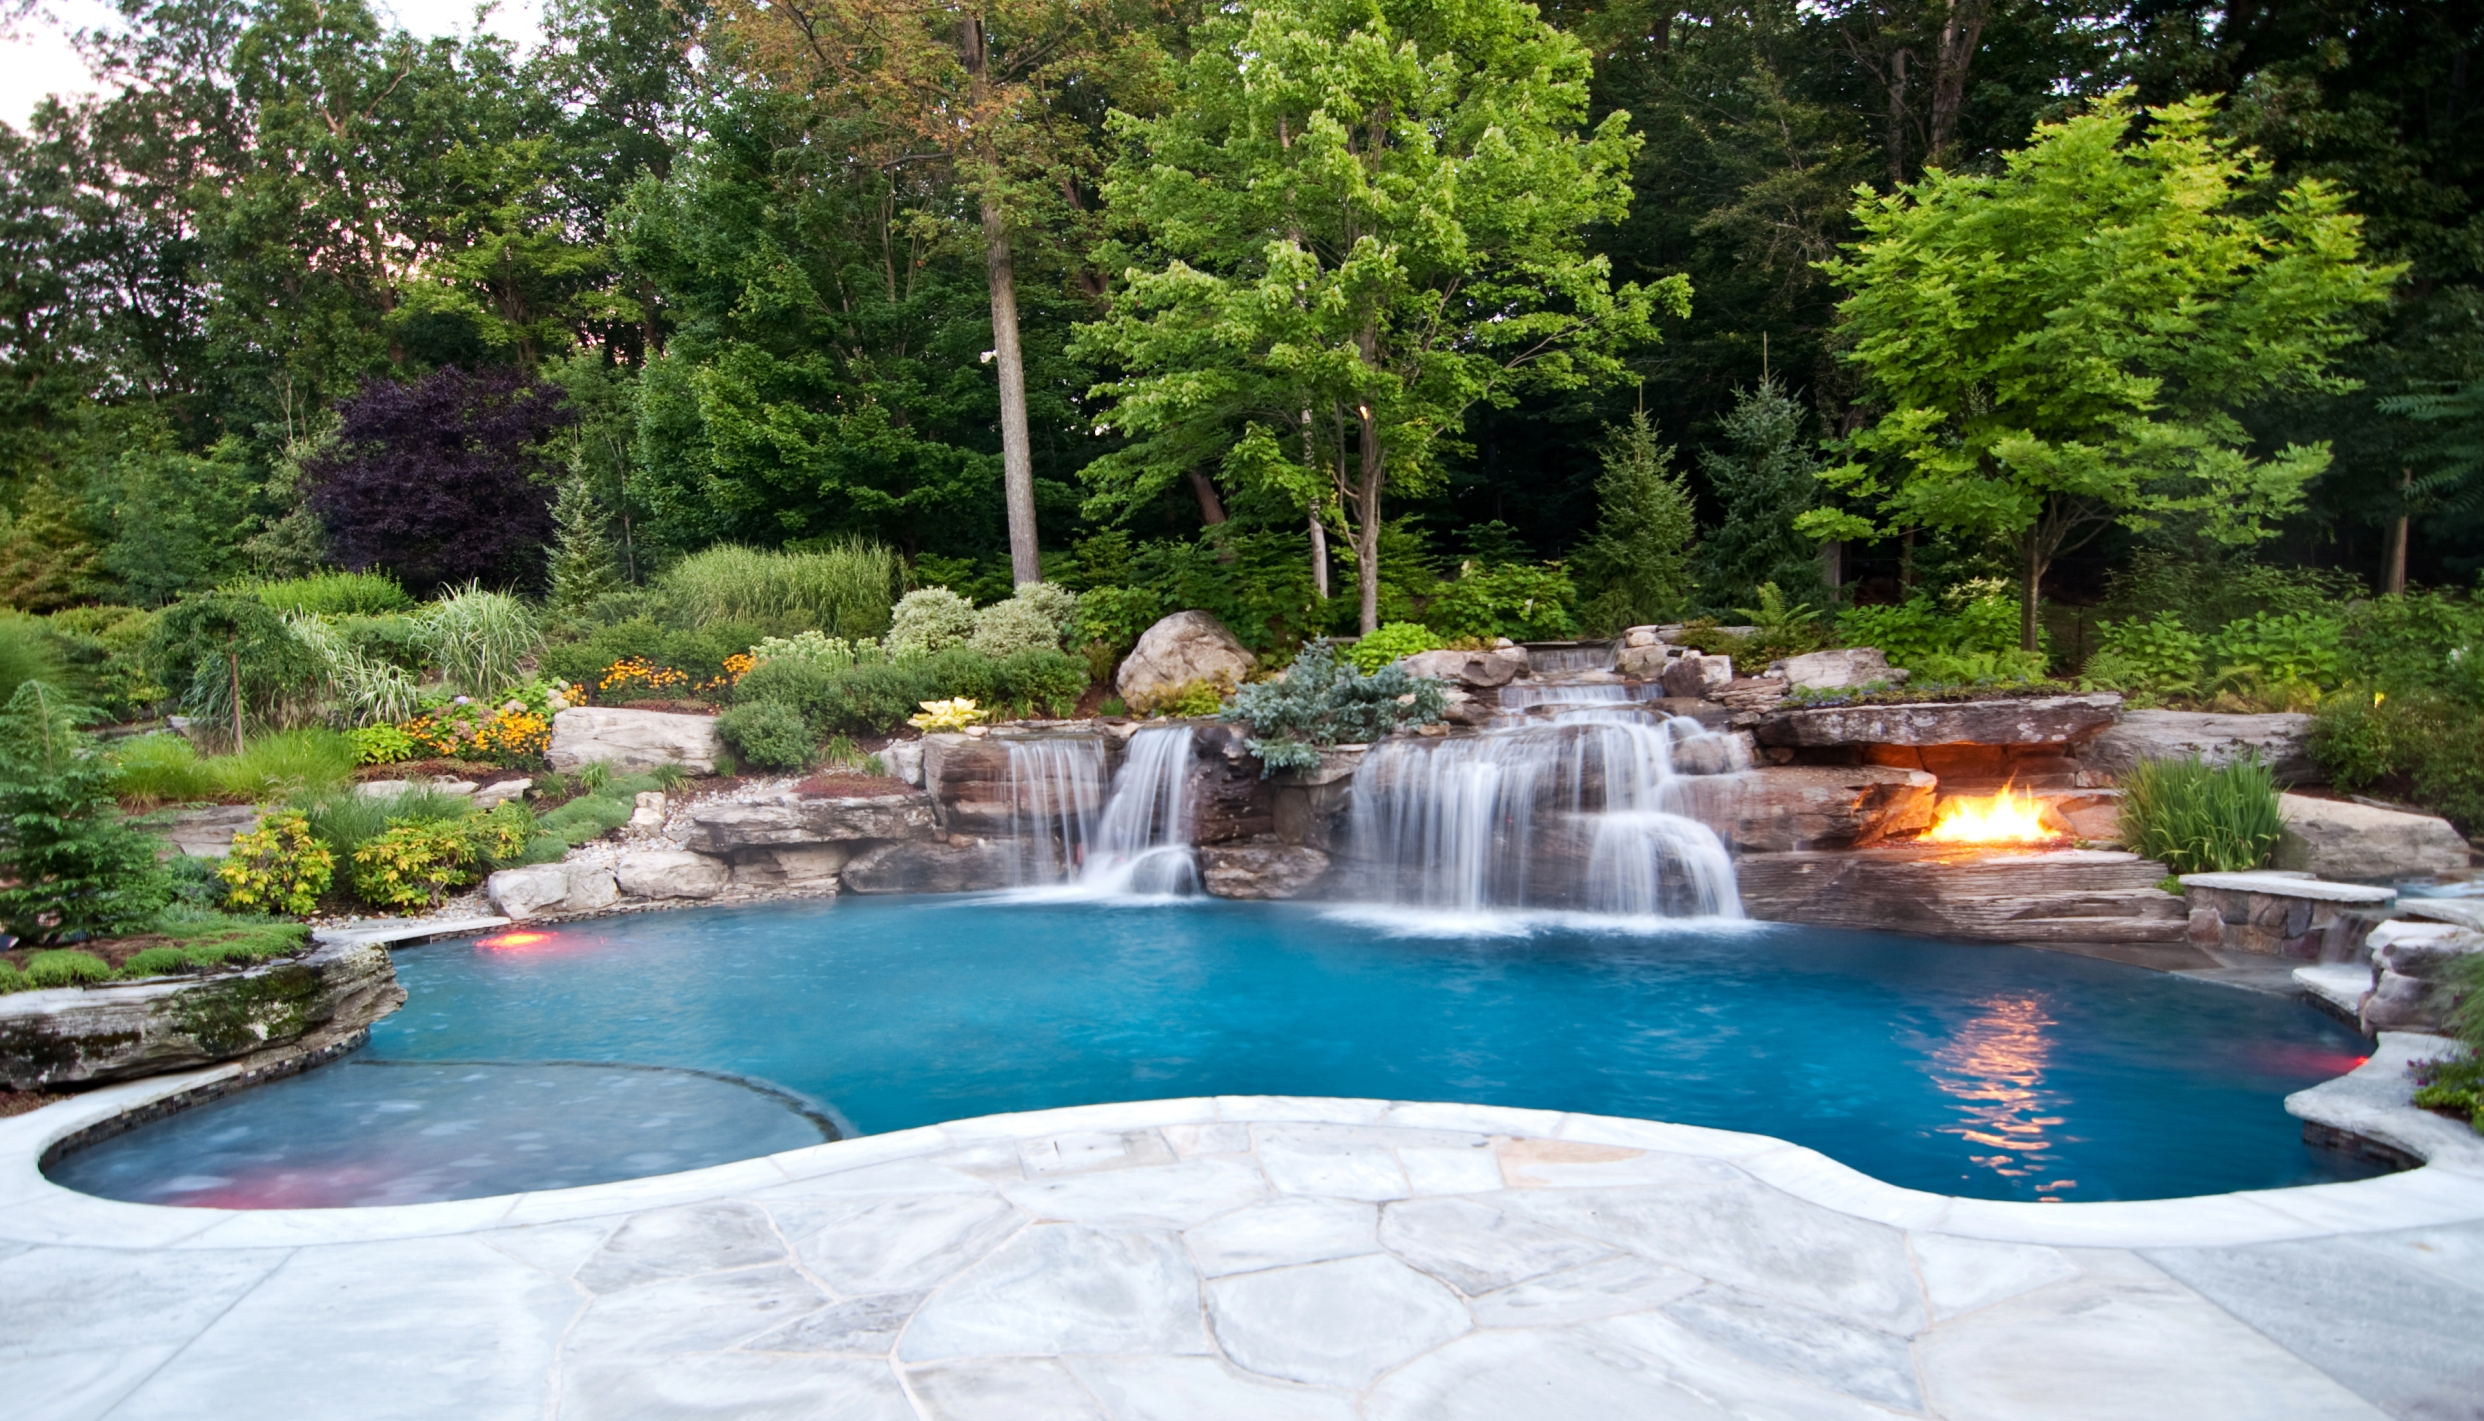 New jersey pool renovation company earns international for Pool design pictures